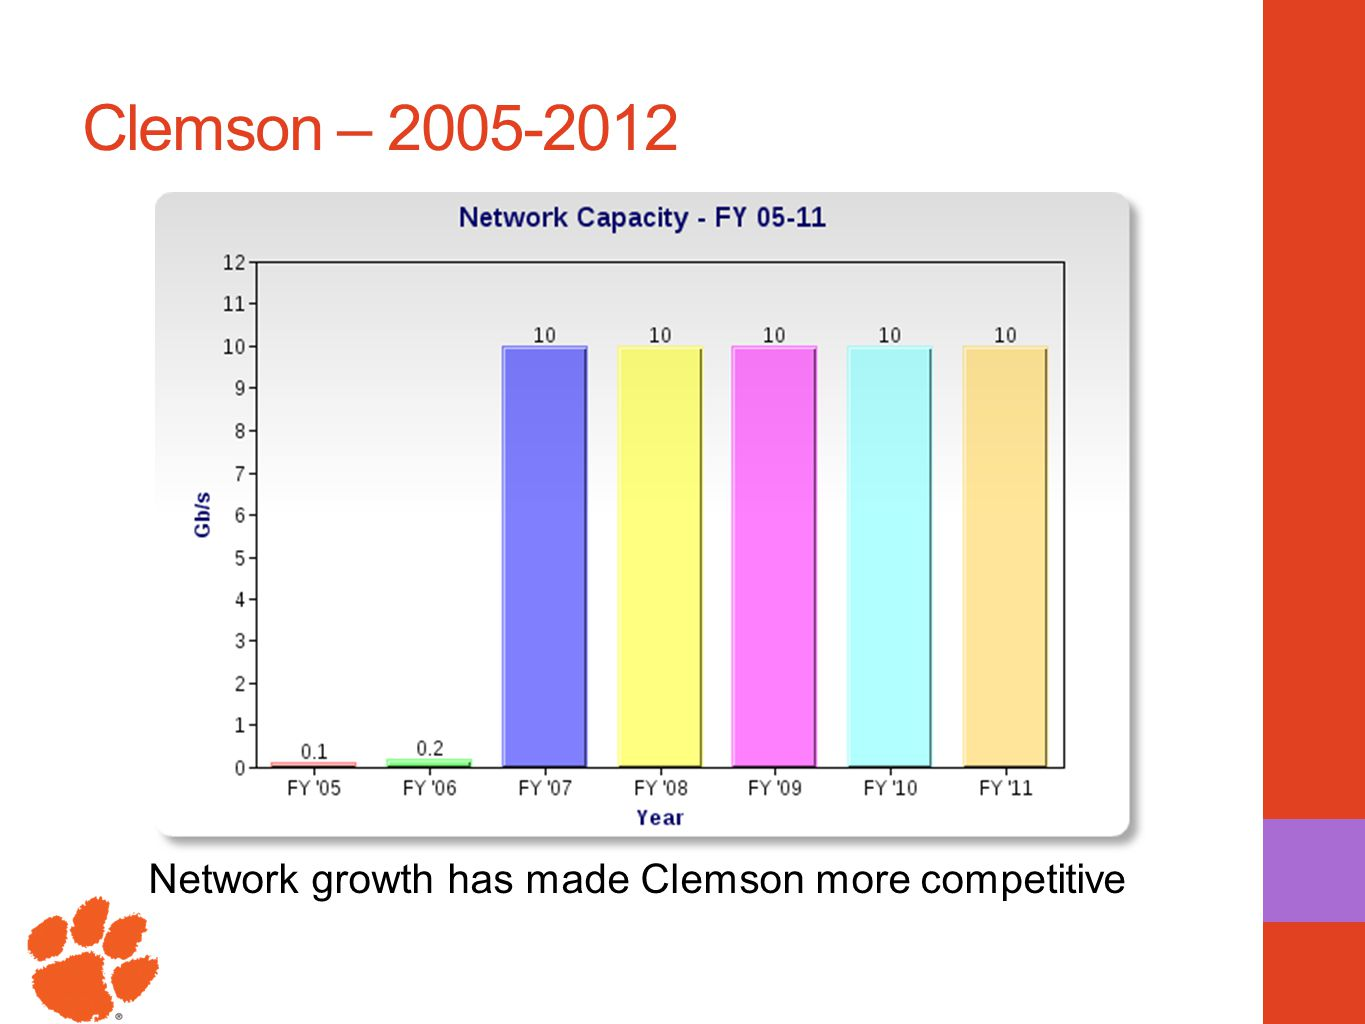 Clemson – 2005-2012 Network growth has made Clemson more competitive